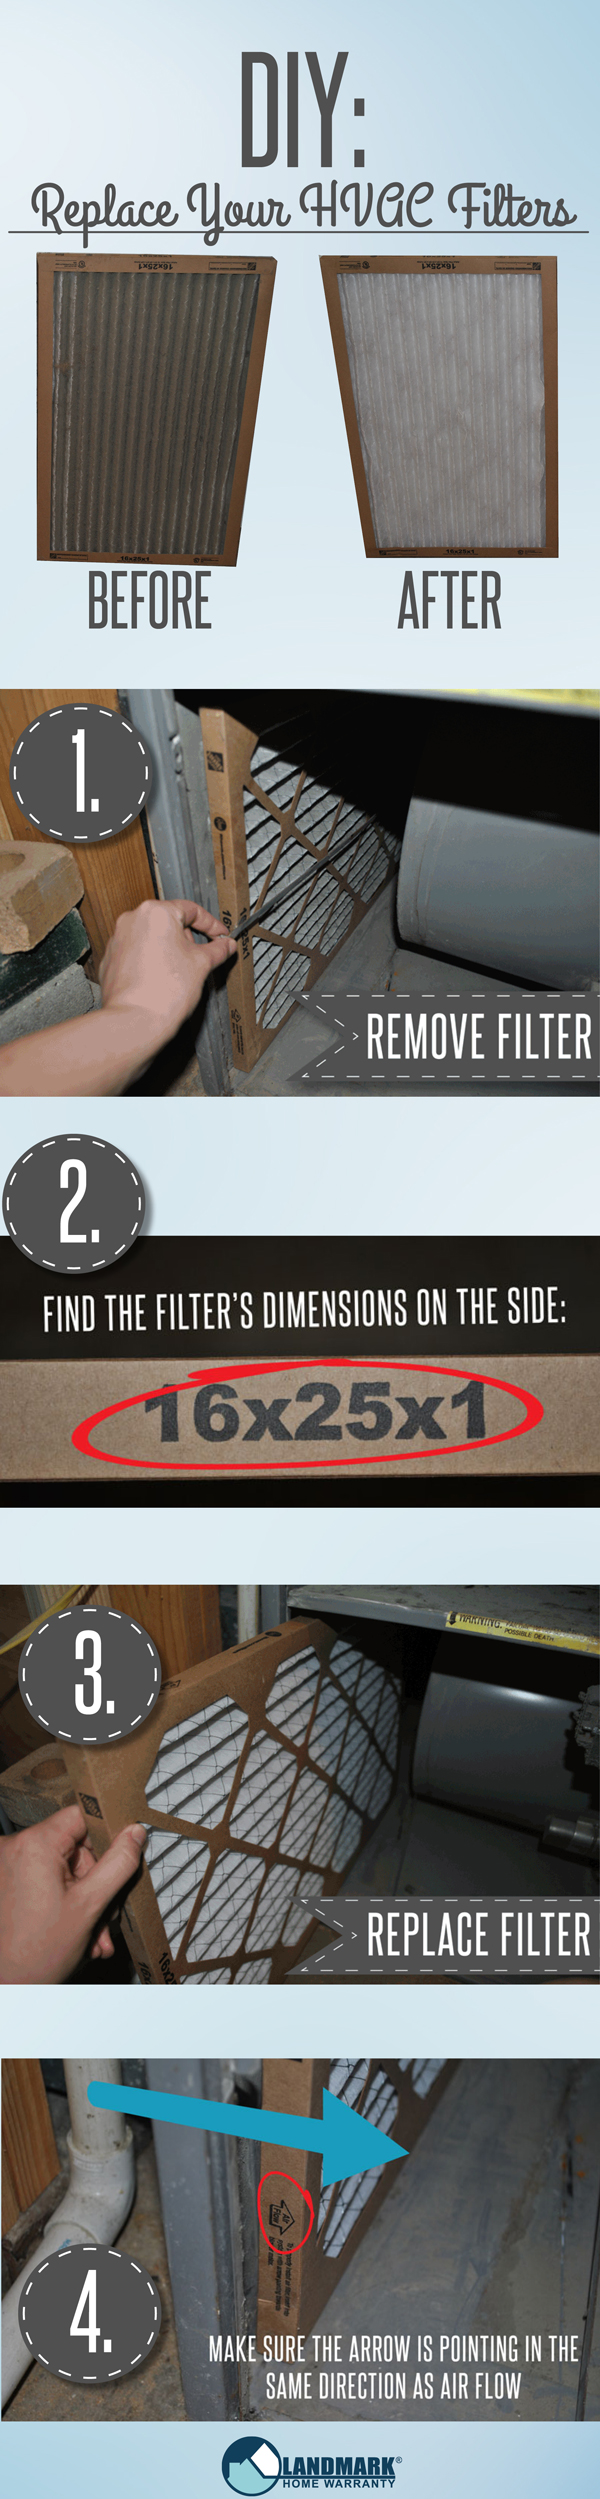 How to clean or replace your hvac filters diy infographic on how to replace your hvac filter for your air conditioner or furnace publicscrutiny Images